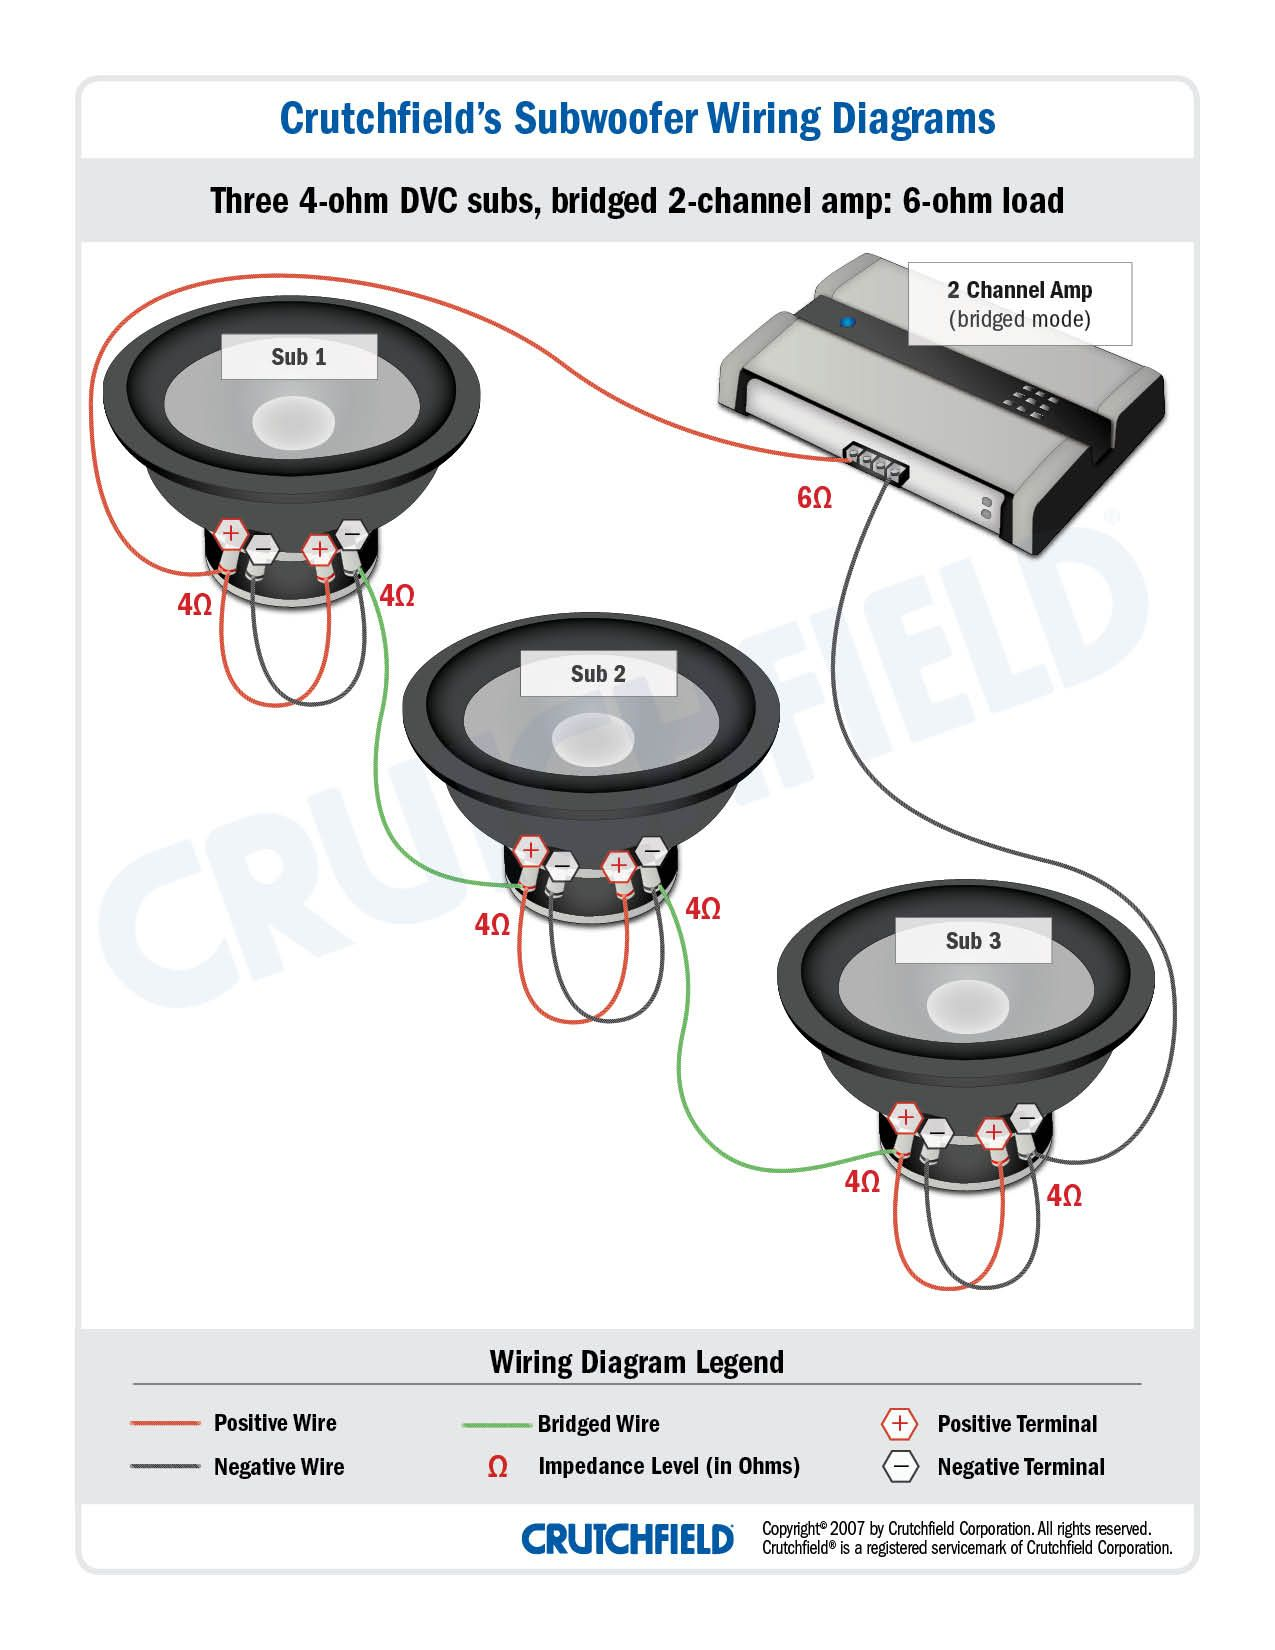 Outstanding Top 10 Subwoofer Wiring Diagram Free Download 3 Dvc 4 Ohm 2 Ch Top Wiring Cloud Eachirenstrafr09Org